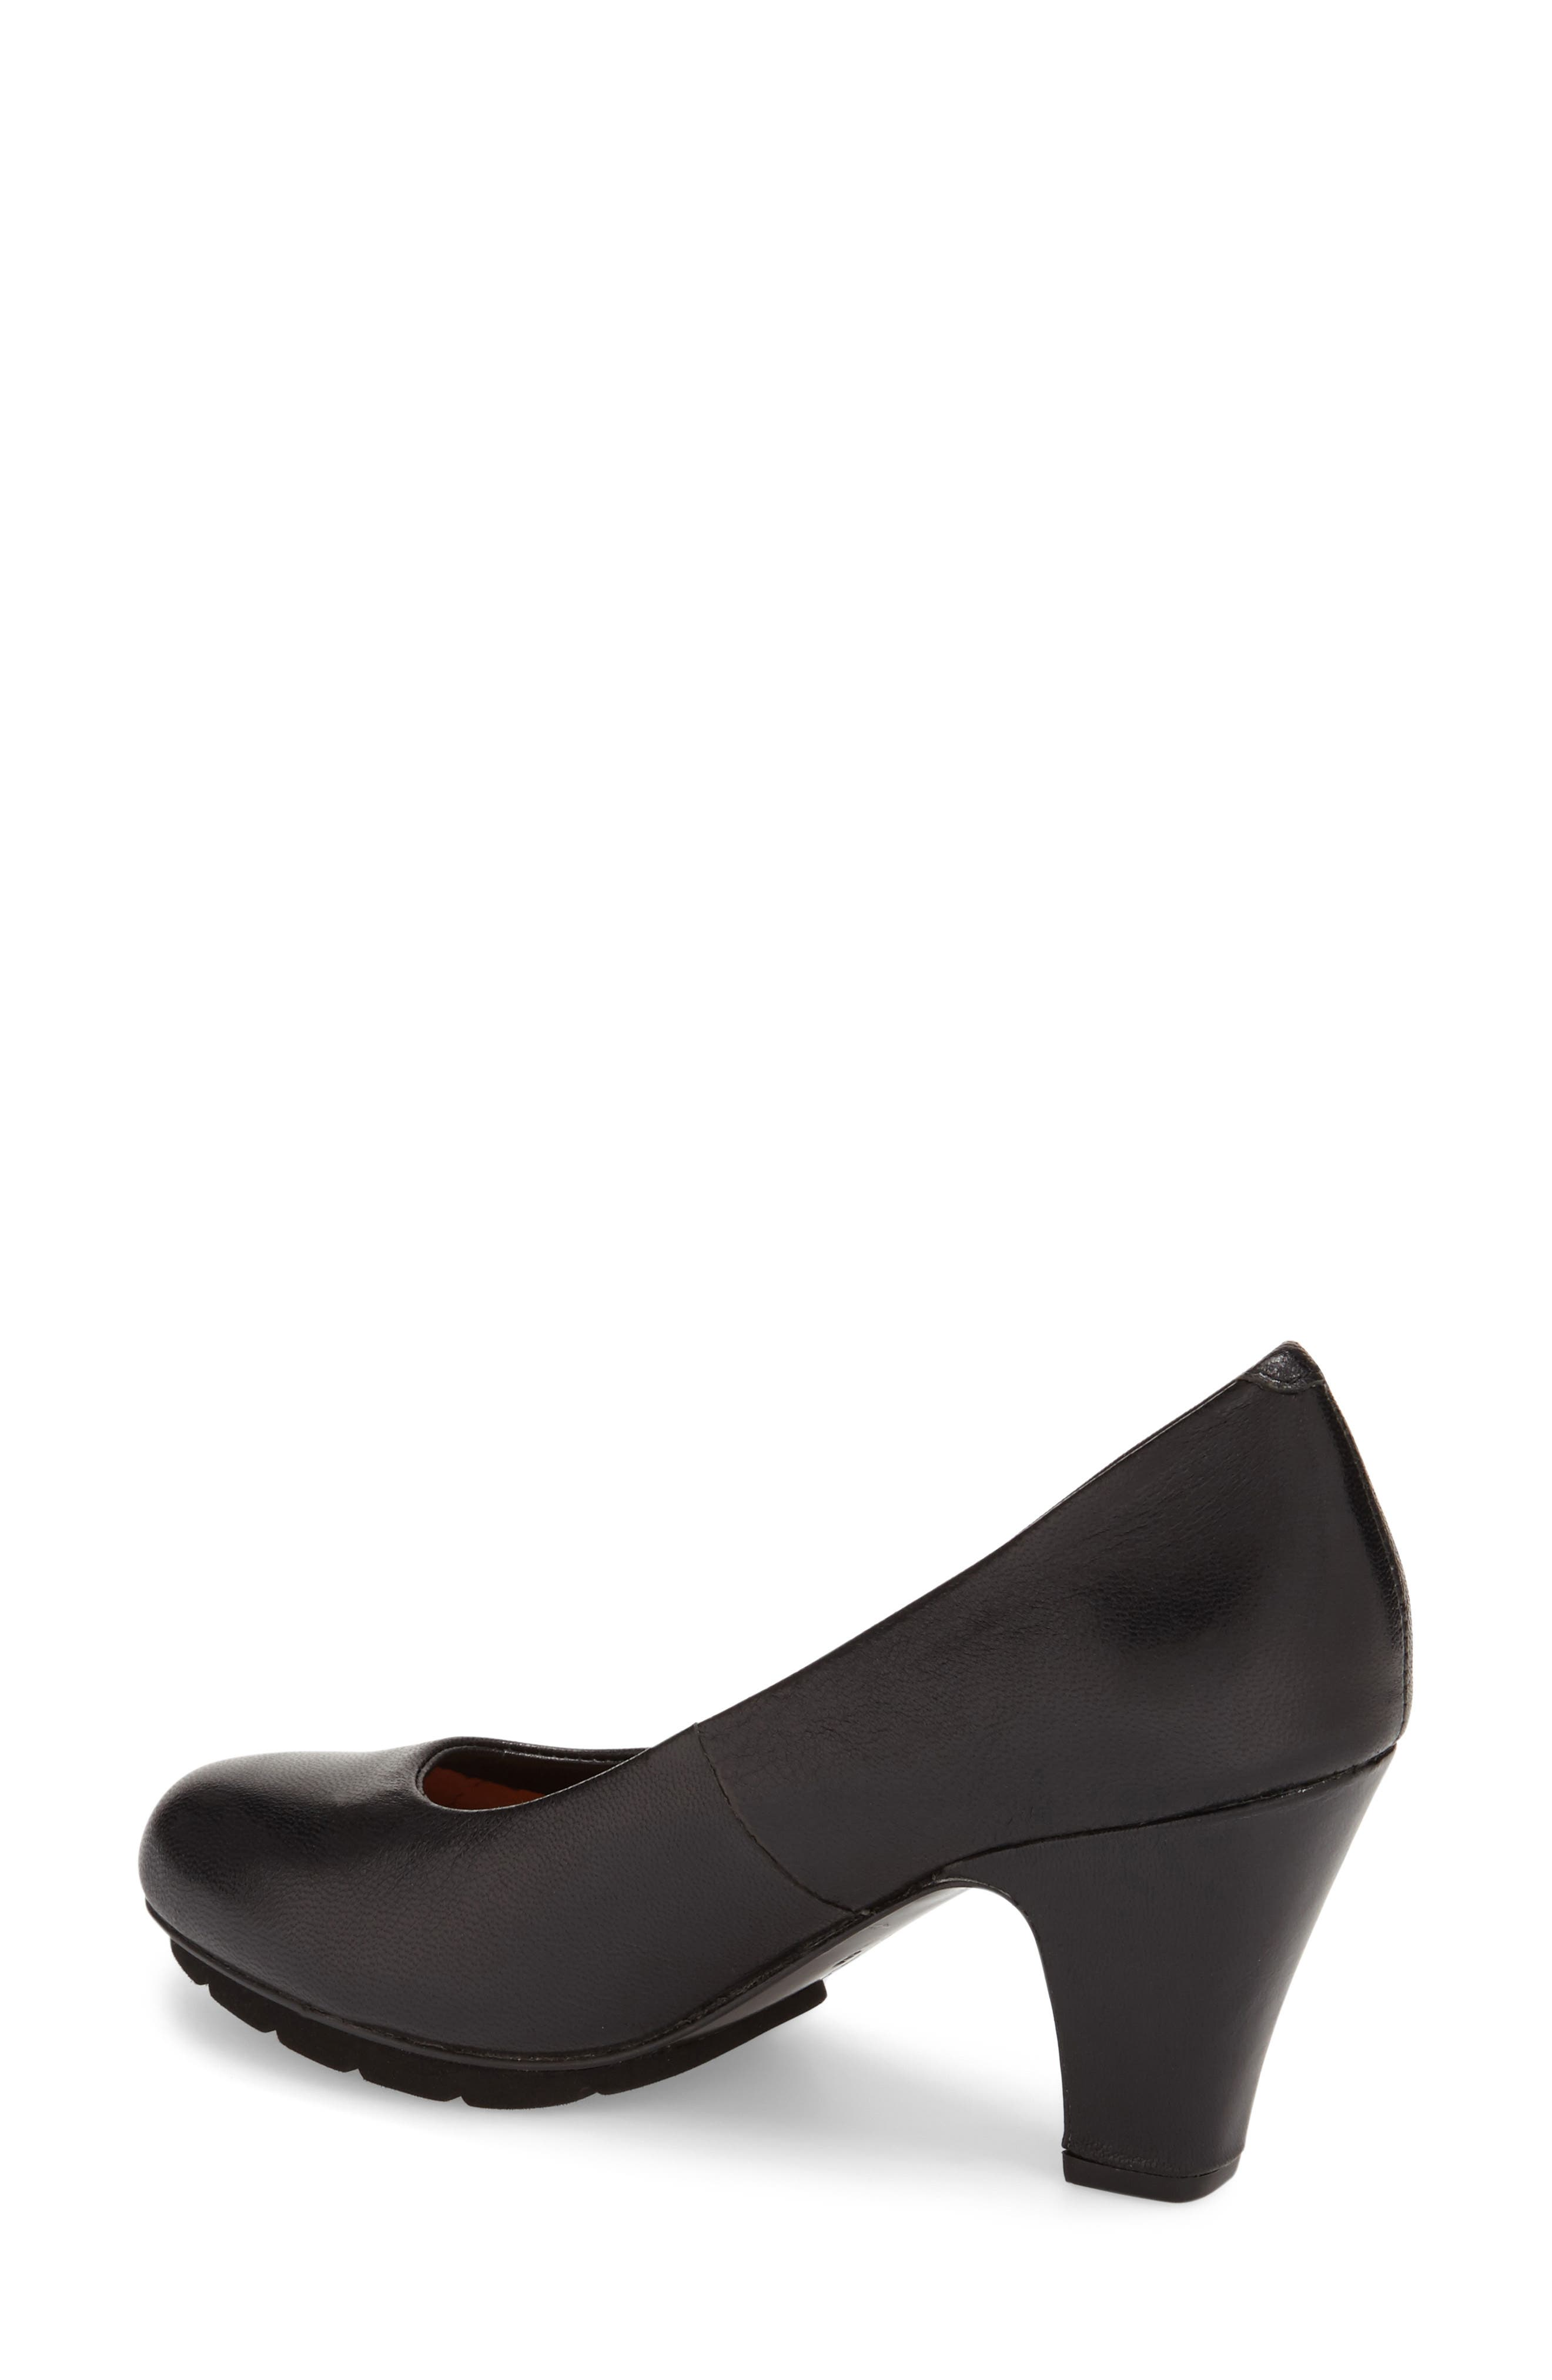 L'Amour des Pieds 'Fabienne' Round Toe Pump,                             Alternate thumbnail 5, color,                             001